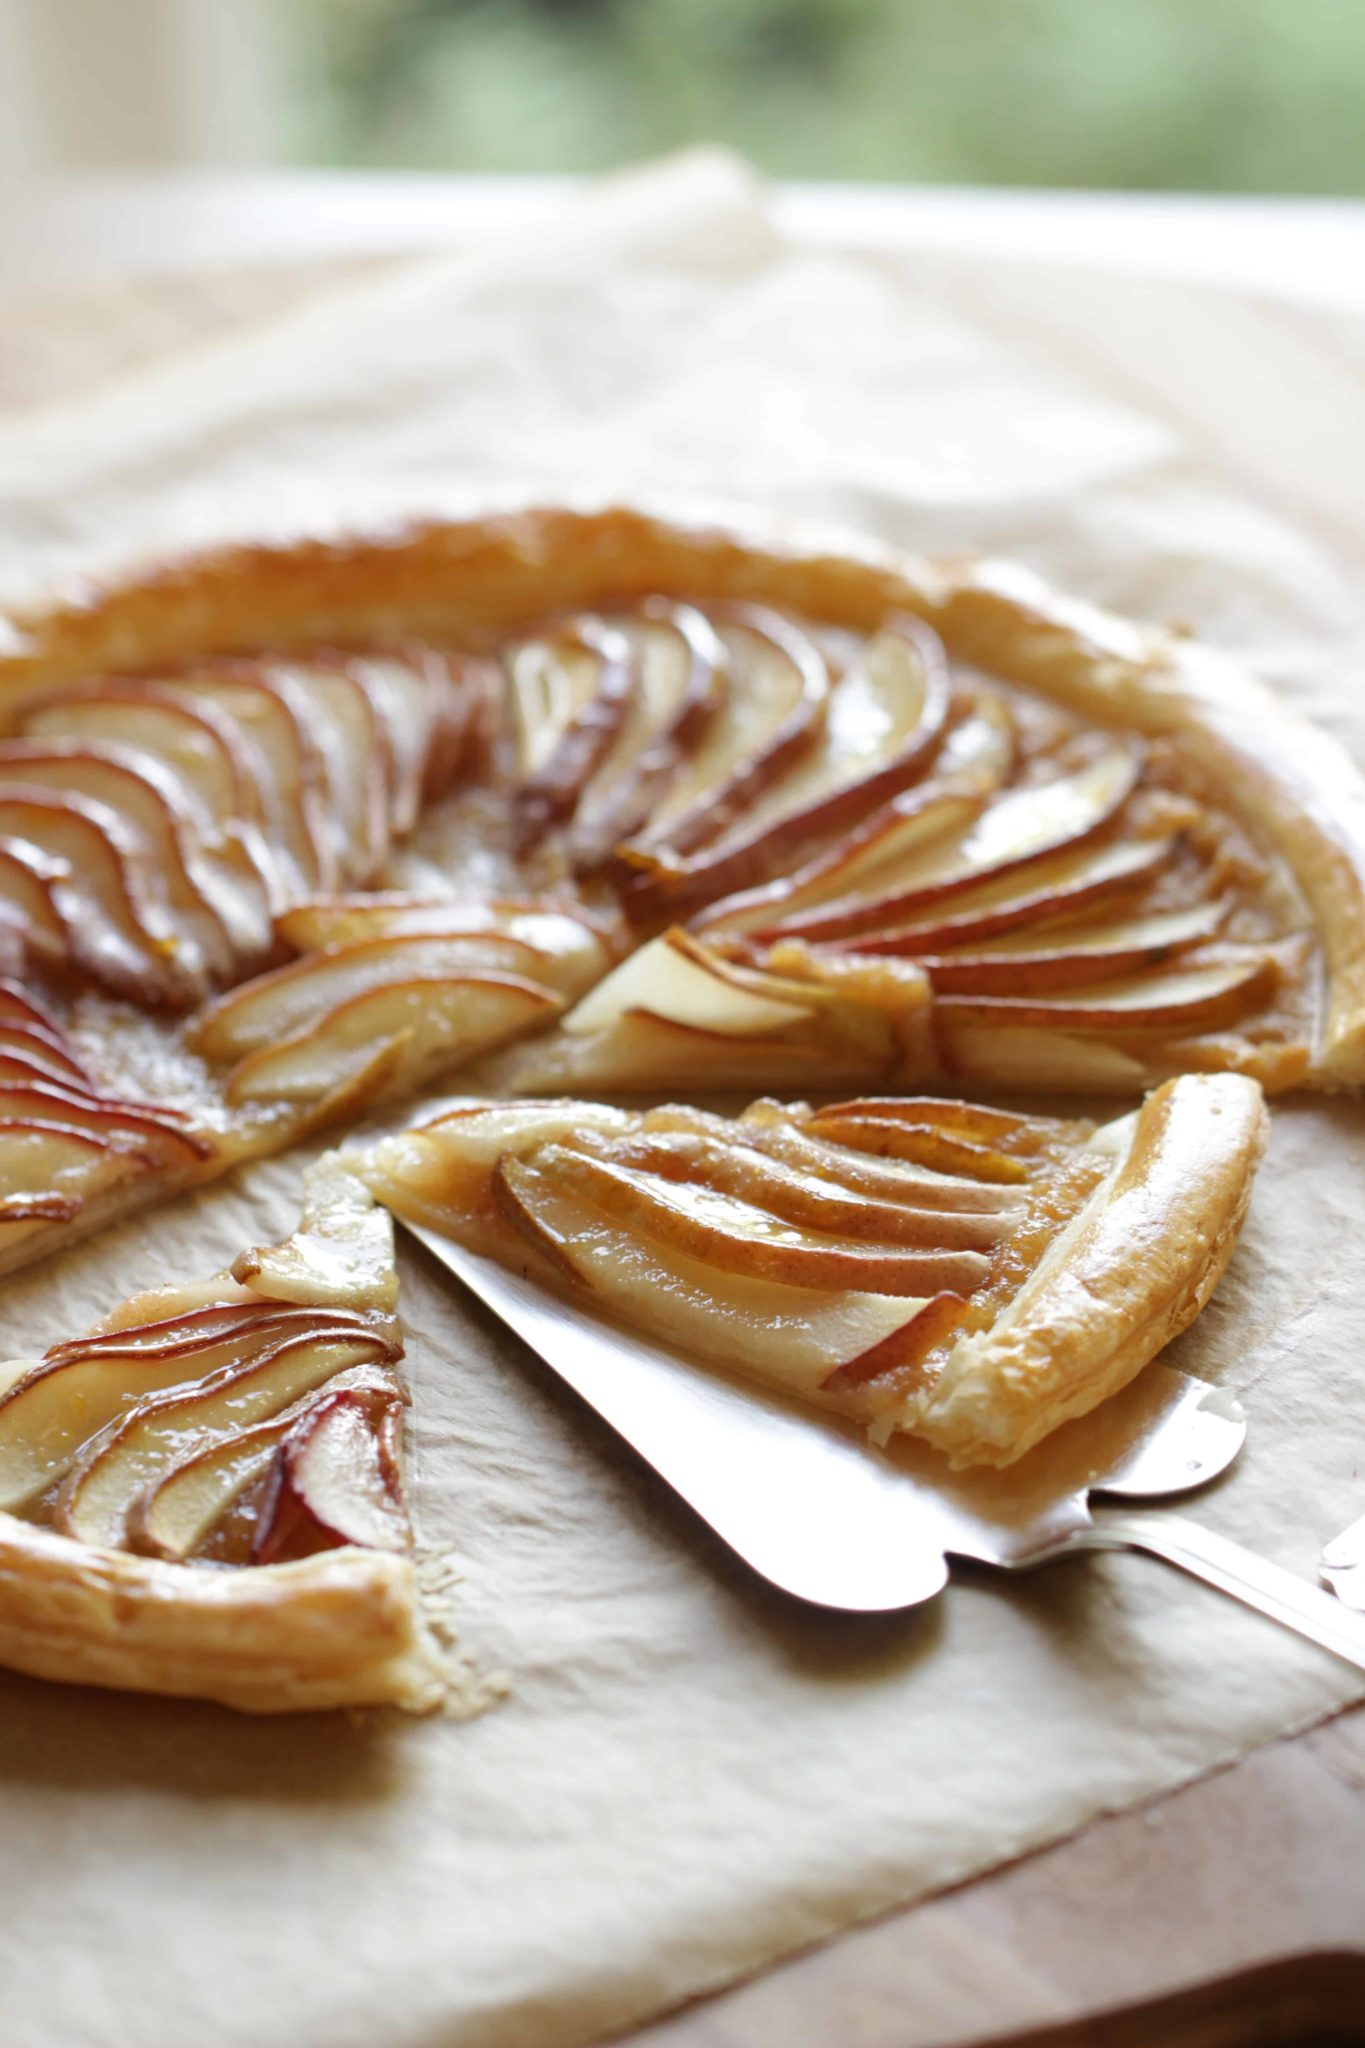 Easy pear tart recipe using puffed pastry entertaining for Apple pear recipes easy